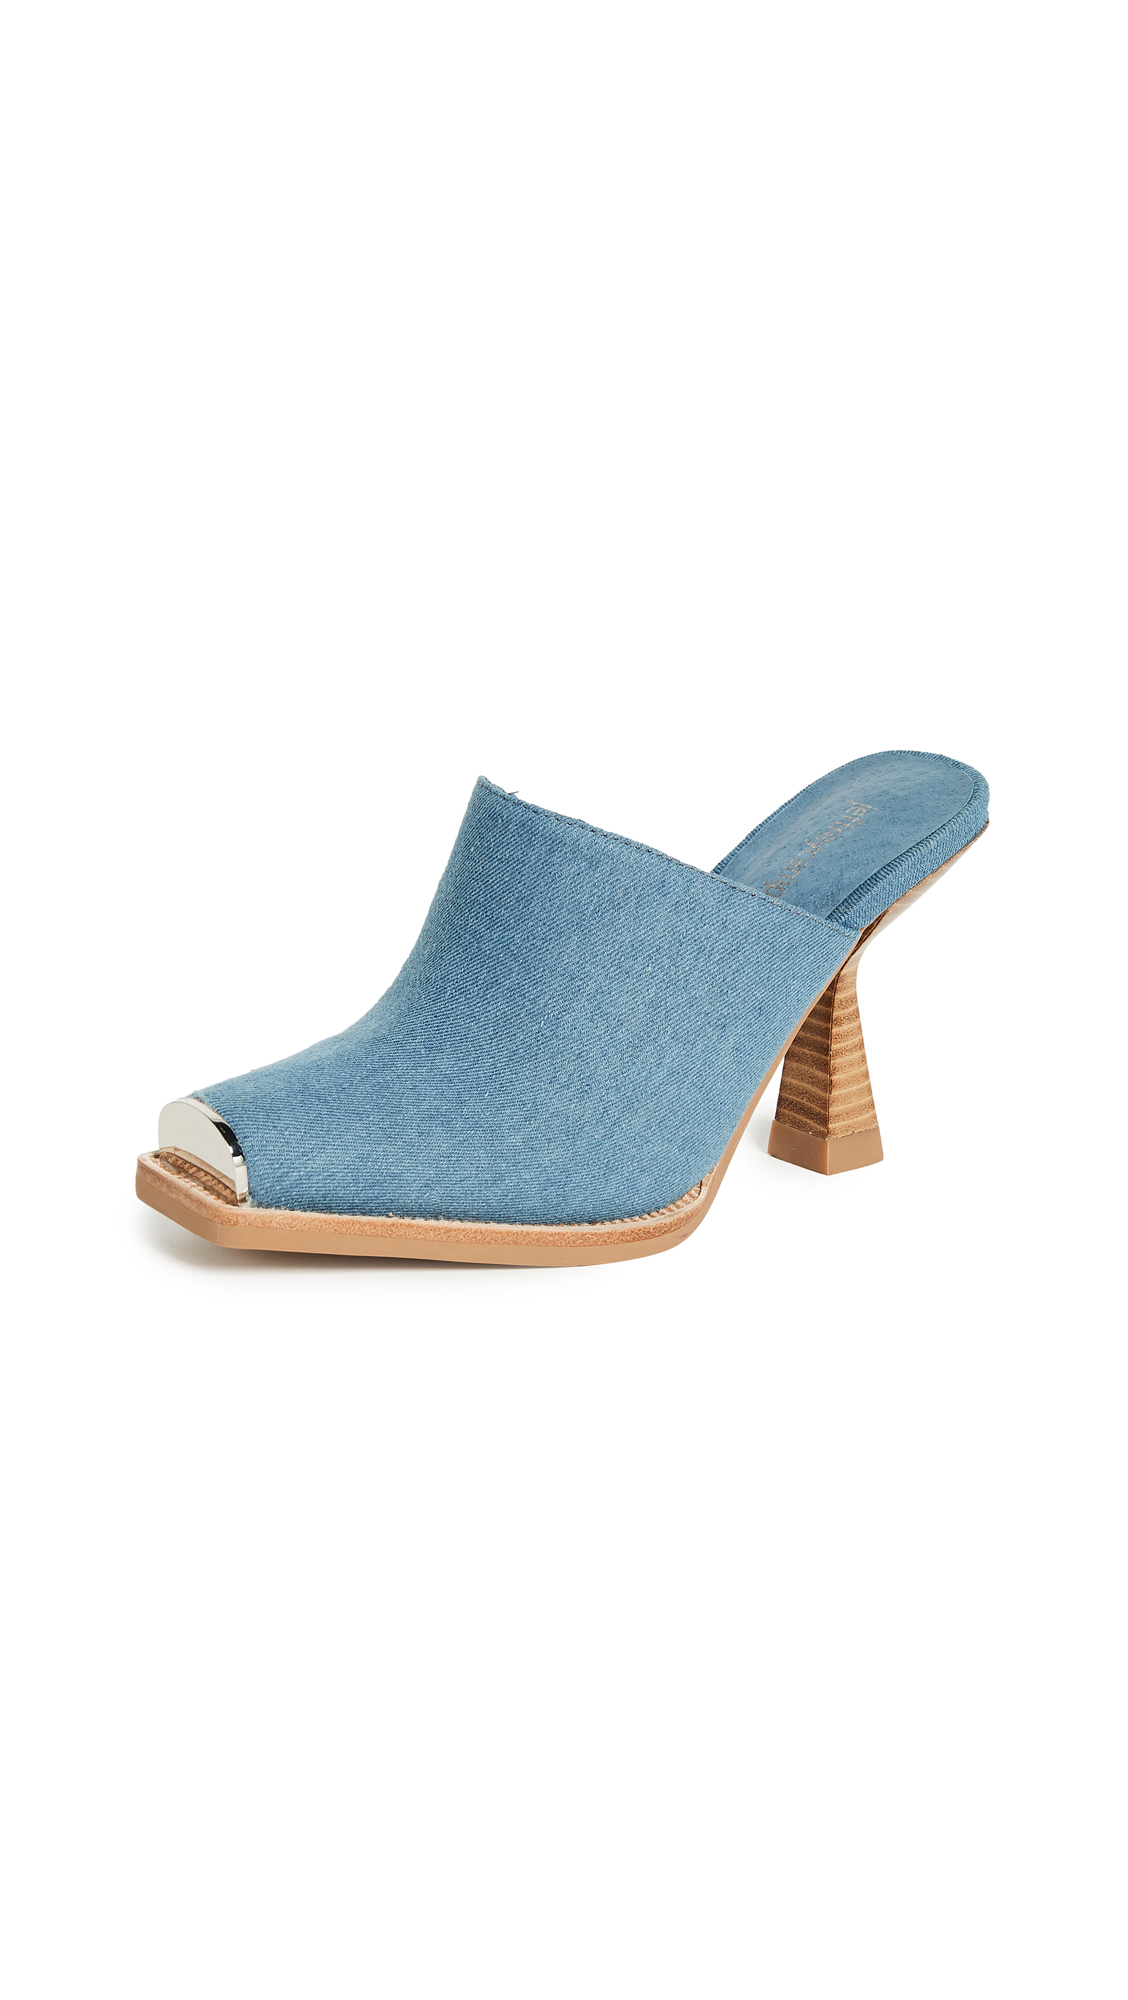 Jeffrey Campbell Real Mules - Blue Denim